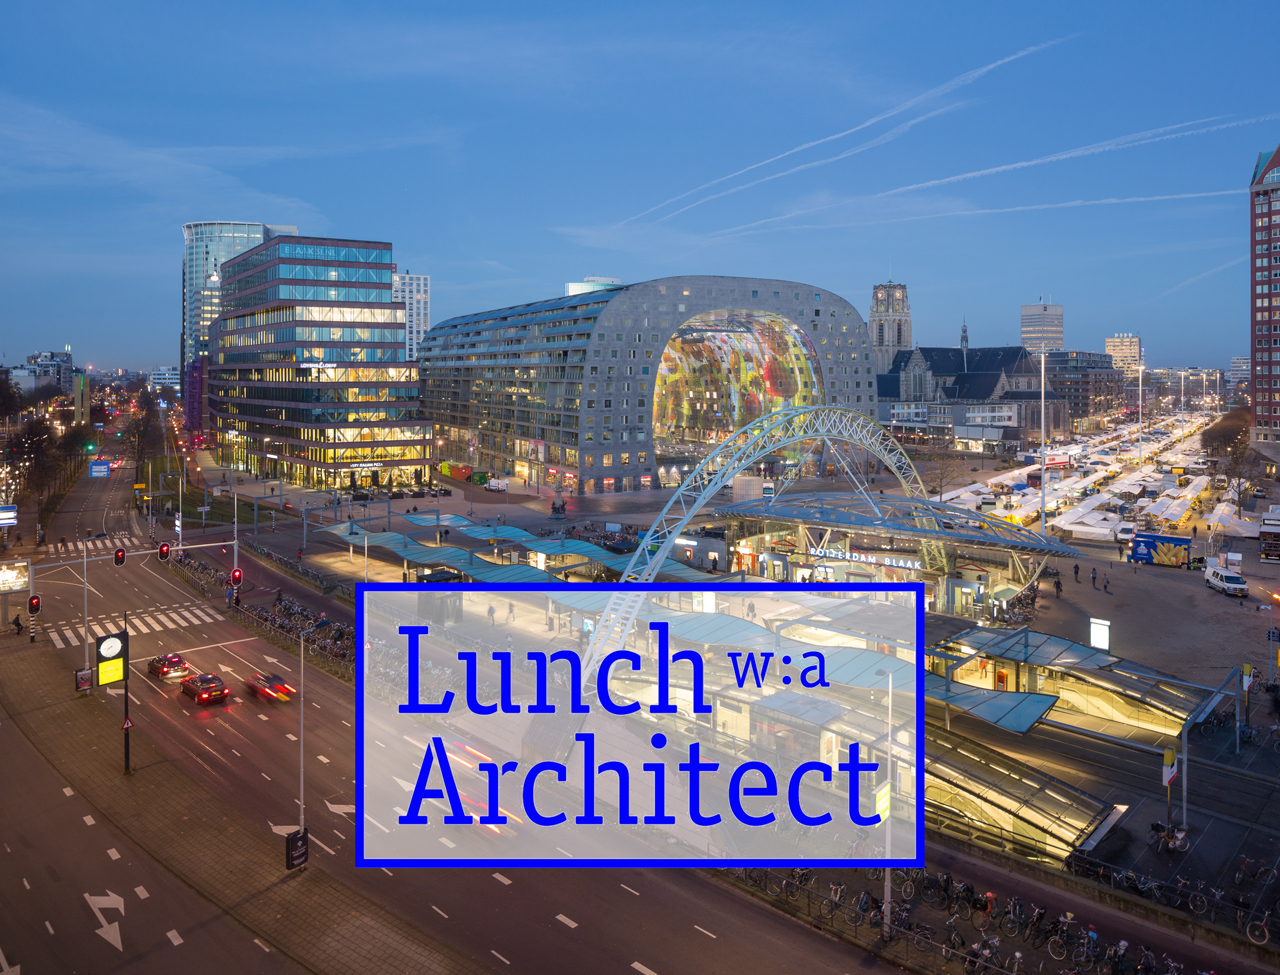 Winy Maas to take part in Lunch with an Architect in Brussels, 6th June 2016